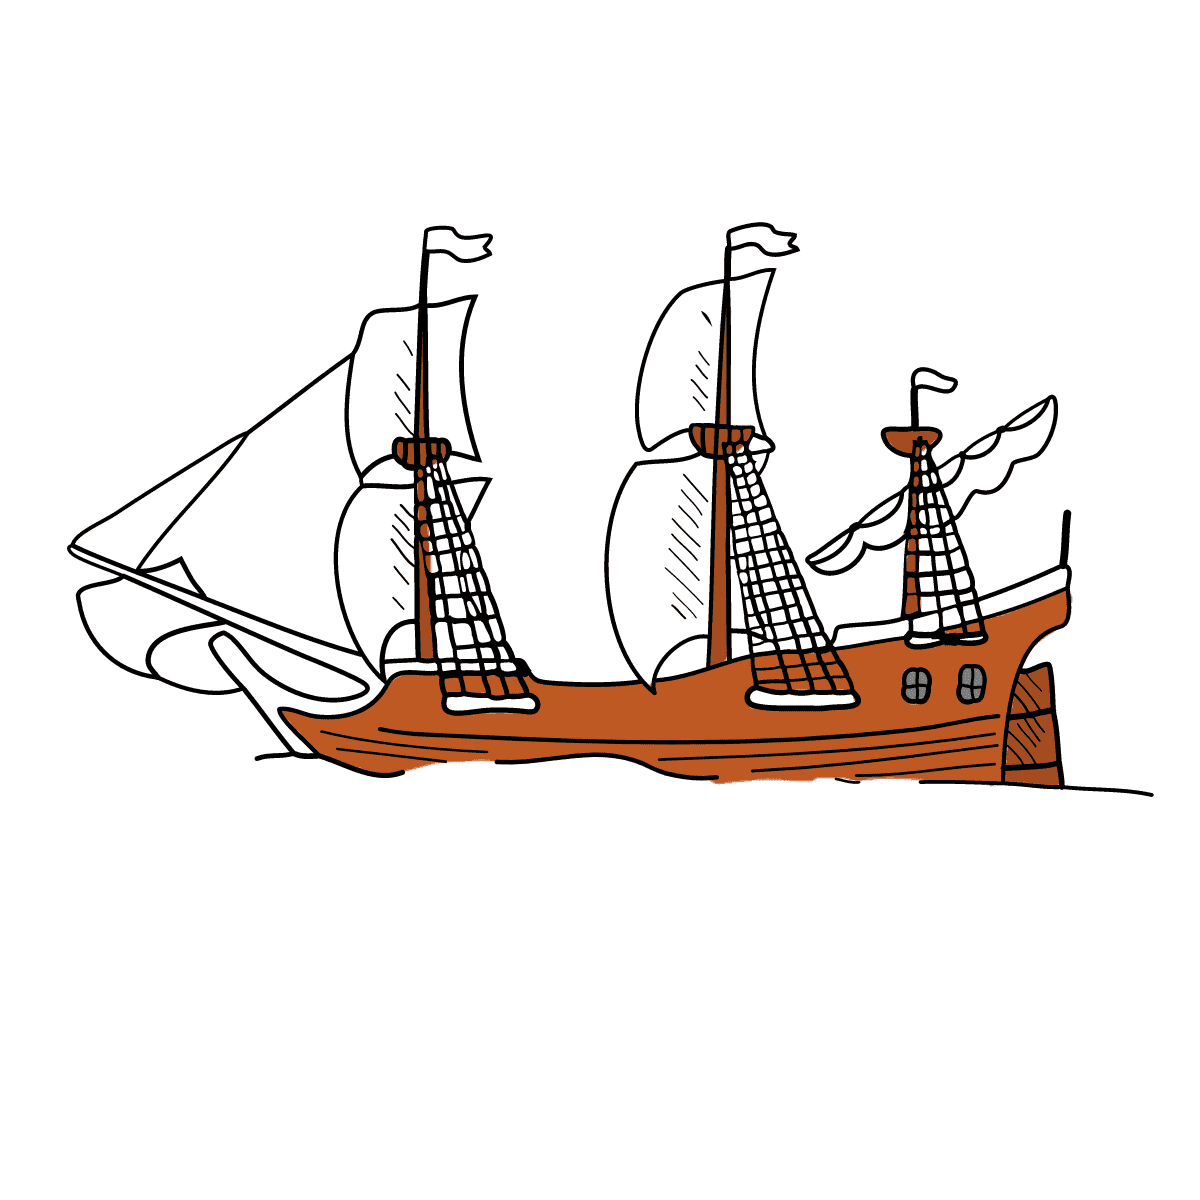 Coloring Page - A Galleon with Sails